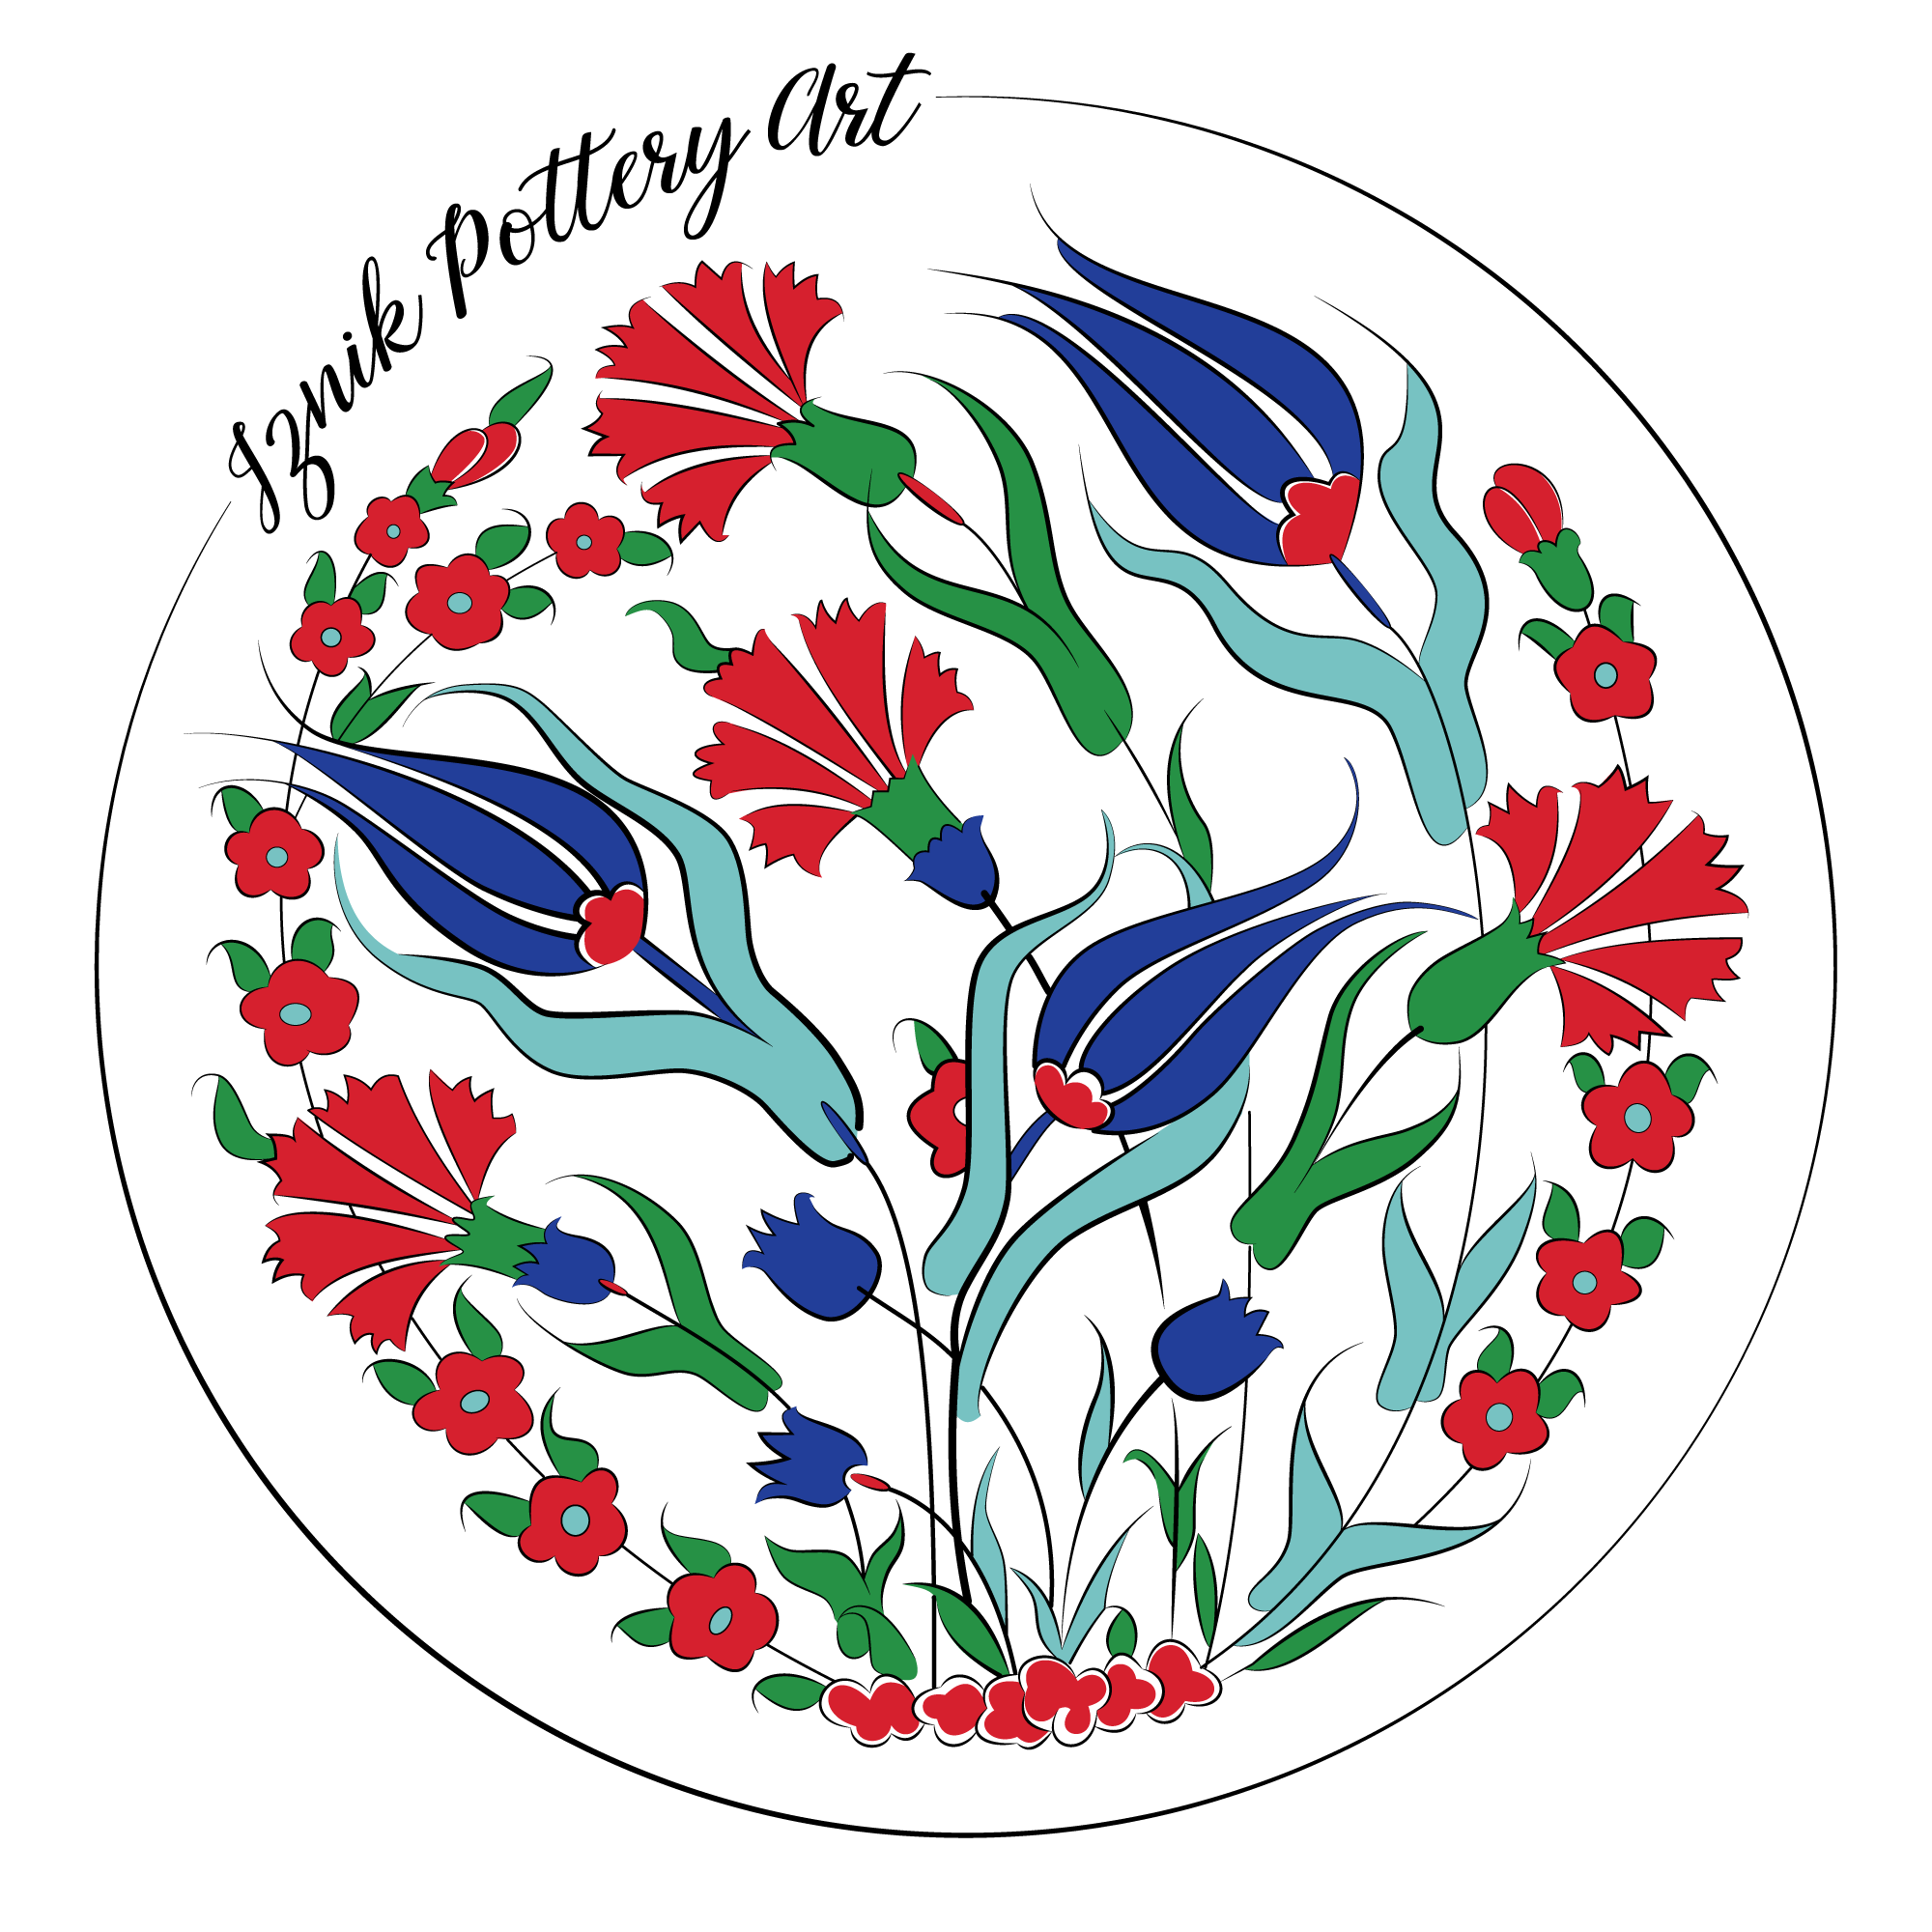 IZNIK POTTERY ART